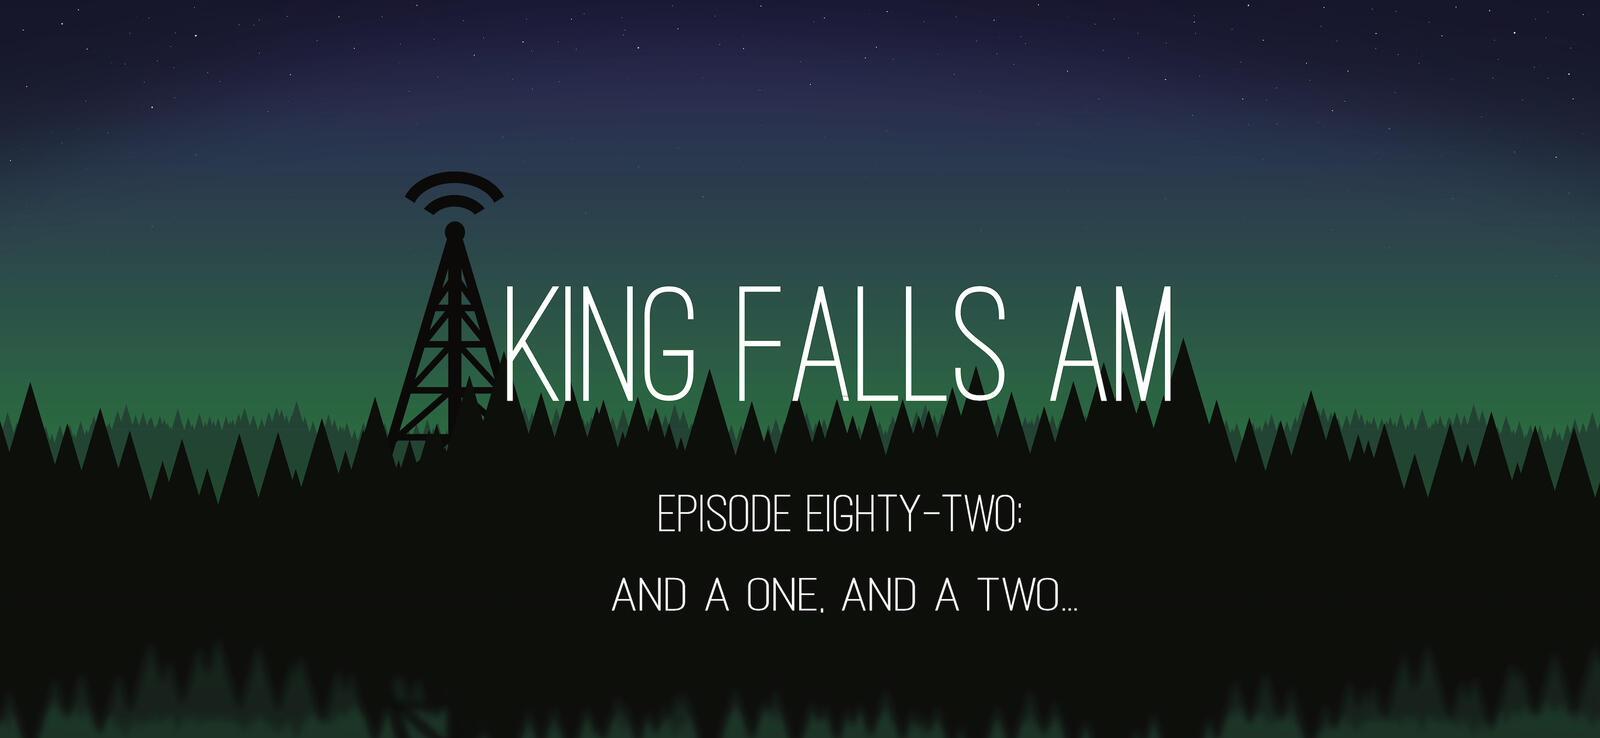 Episode Eighty-Two: And A One, And A Two...